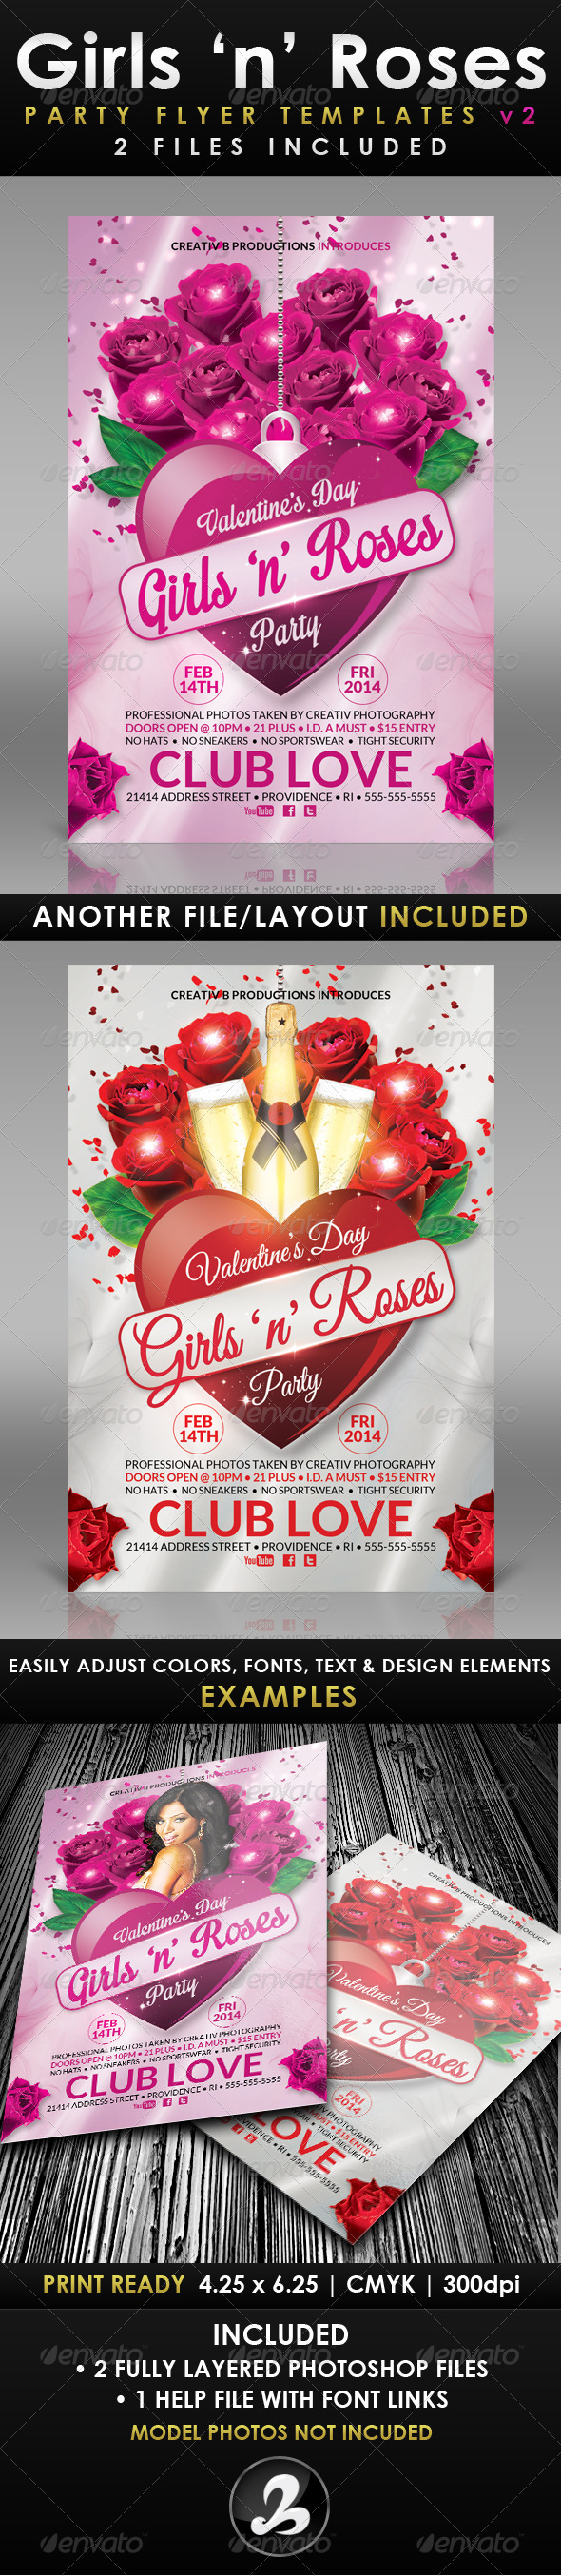 GraphicRiver Girls n Roses Valentine s Day Flyer Template 2 6537005